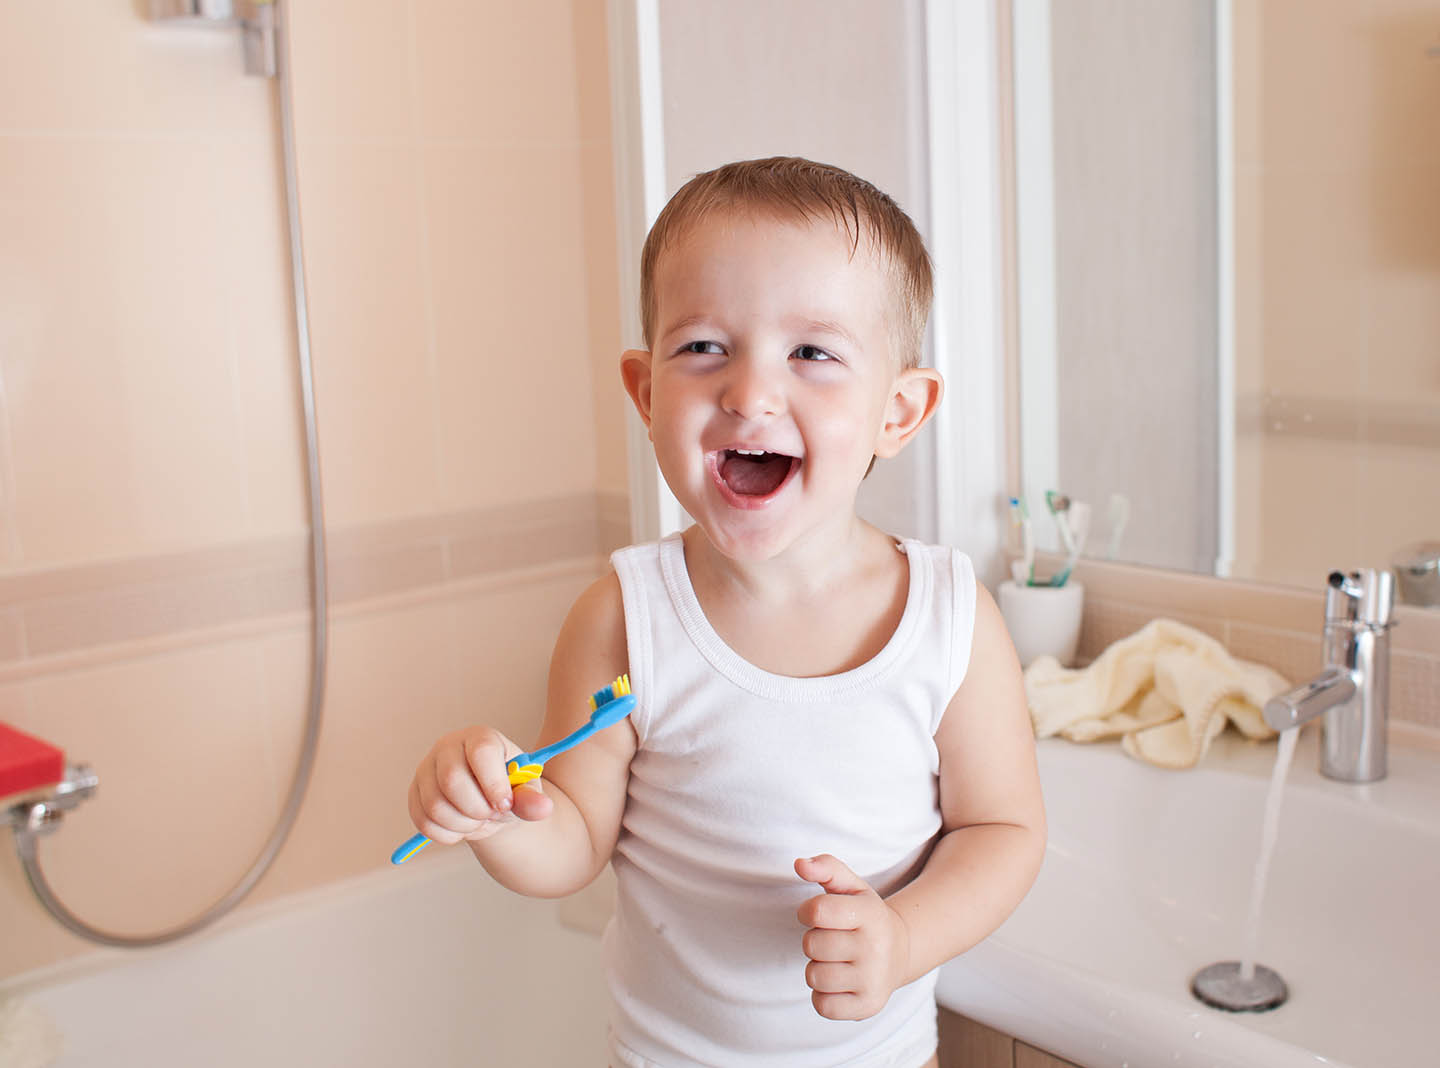 Boy about to brush his teeth